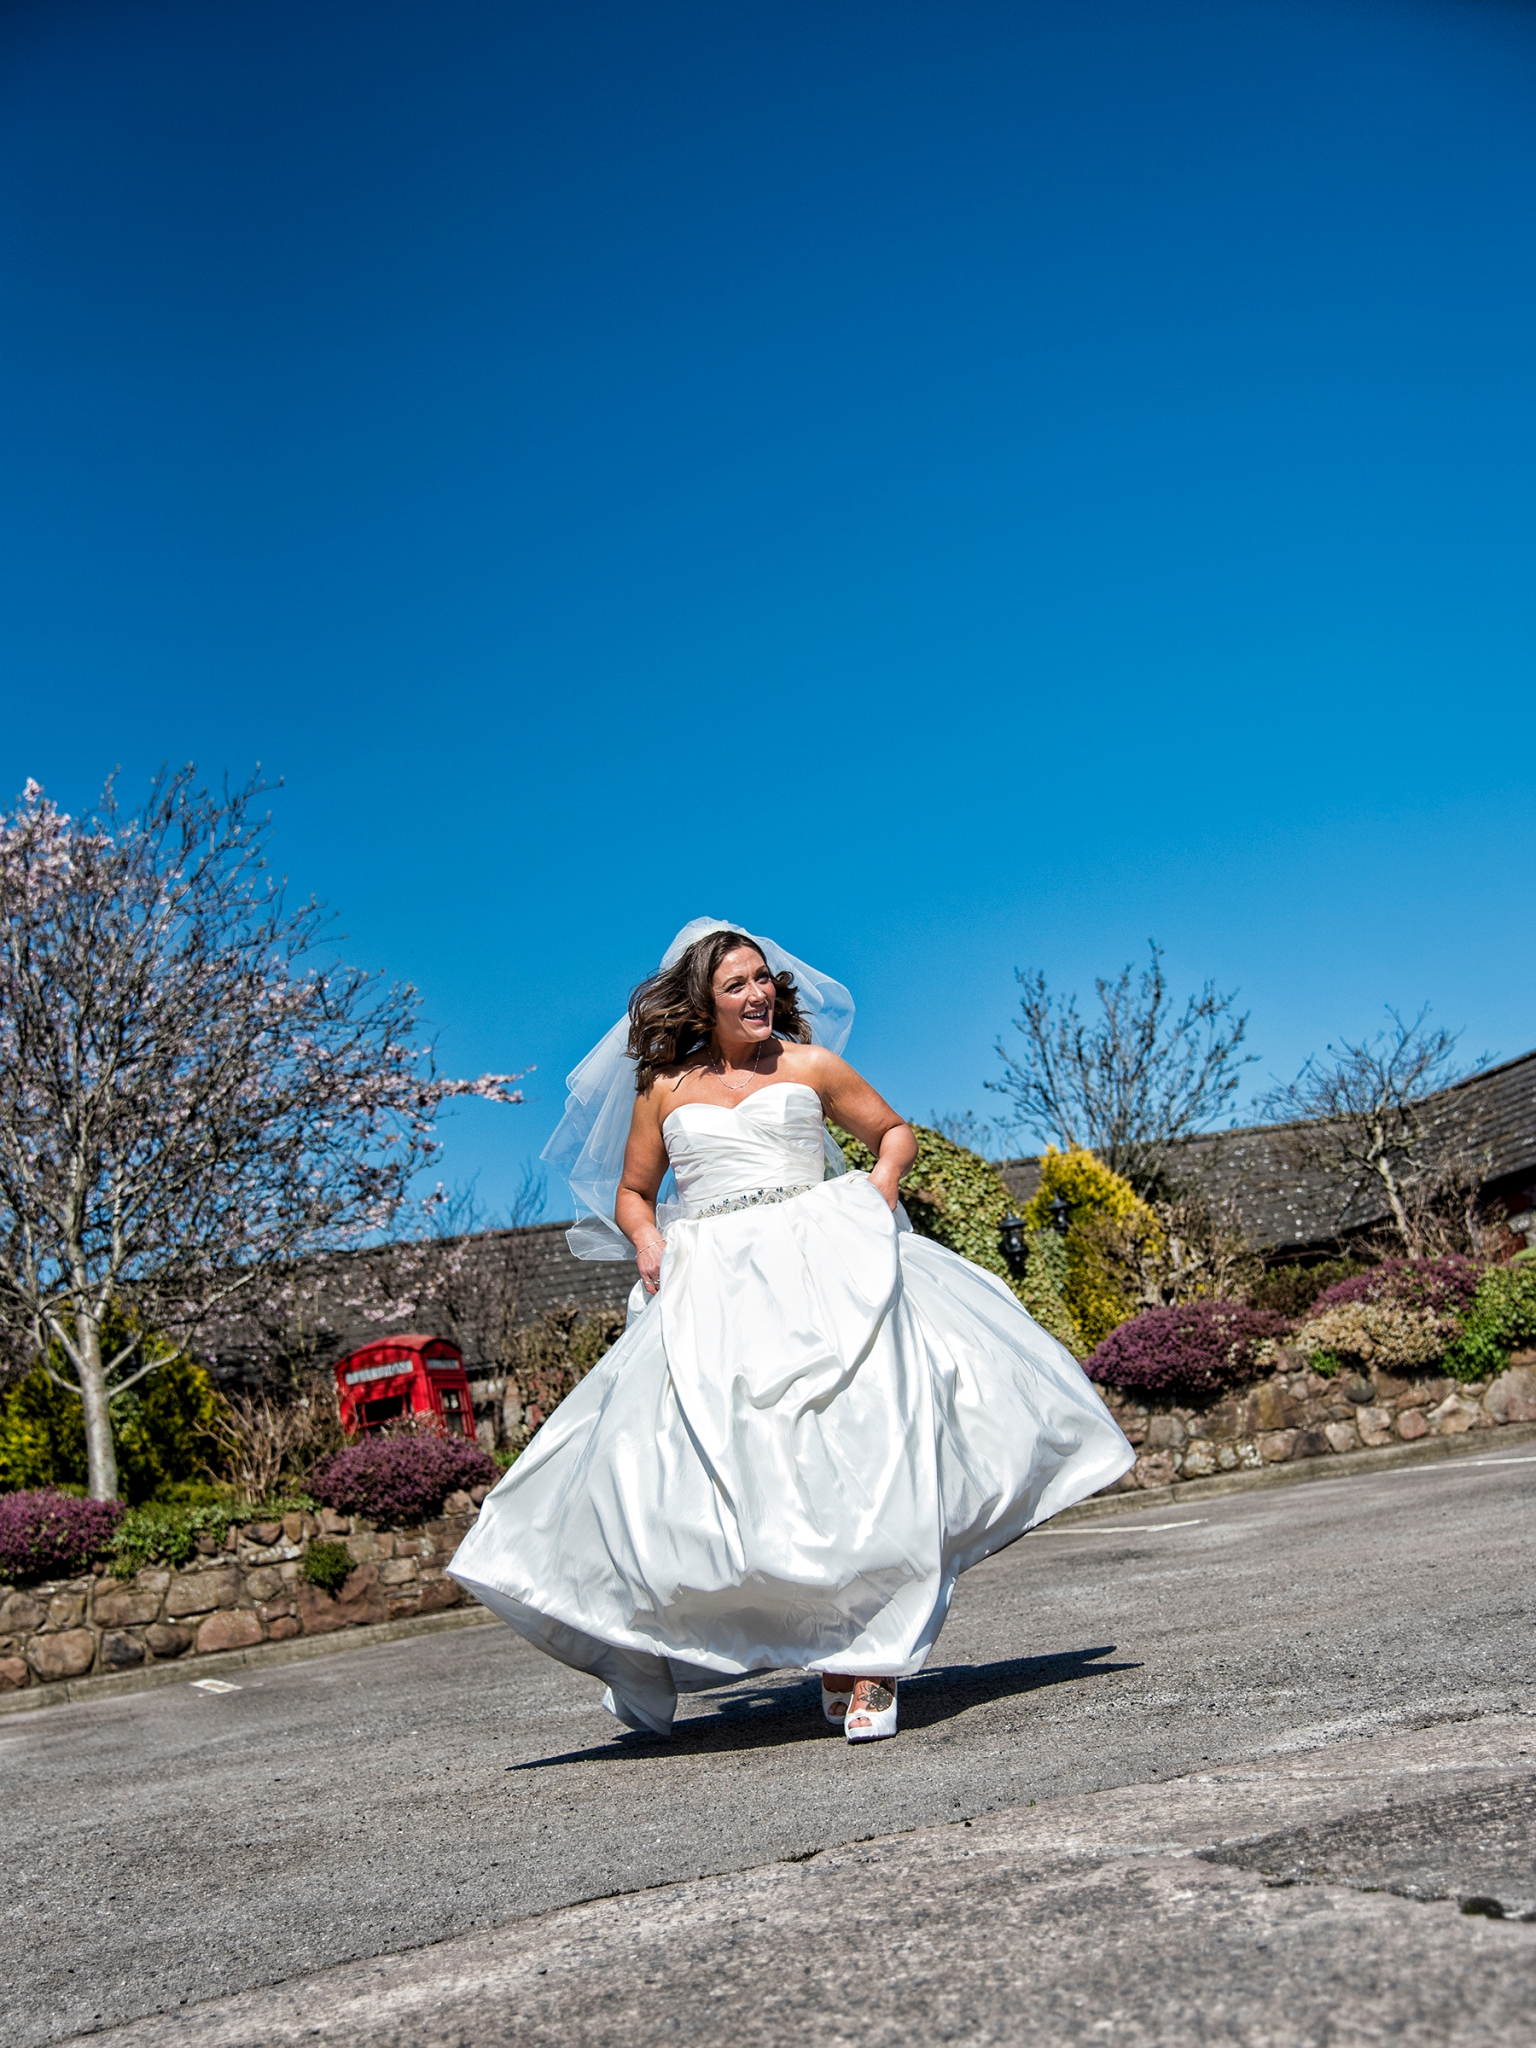 Escape wedding package from The Mill Forge Hotel near Gretna Green